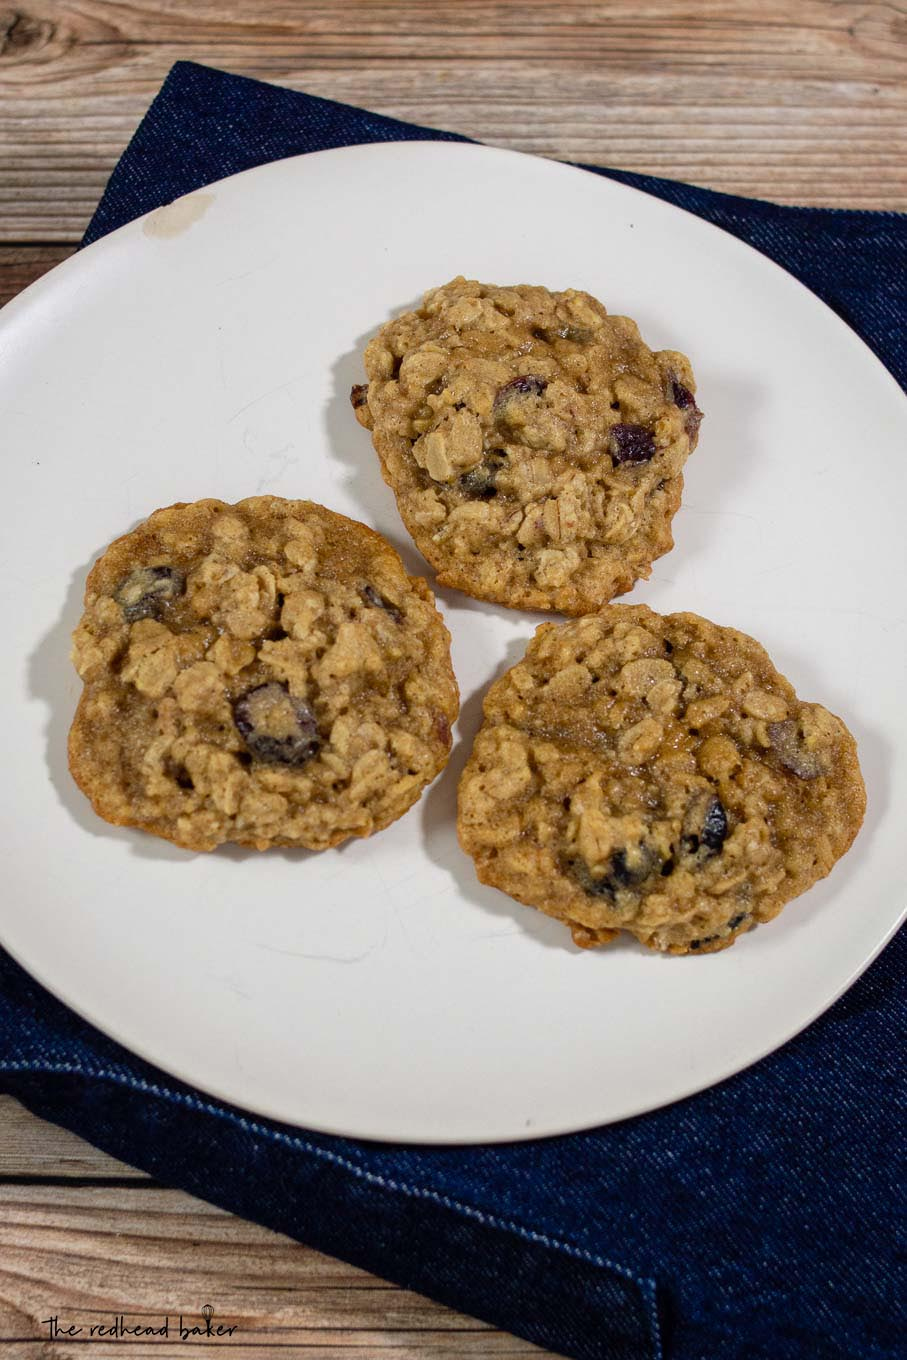 Three cranberry-orange oatmeal cookies on a plate